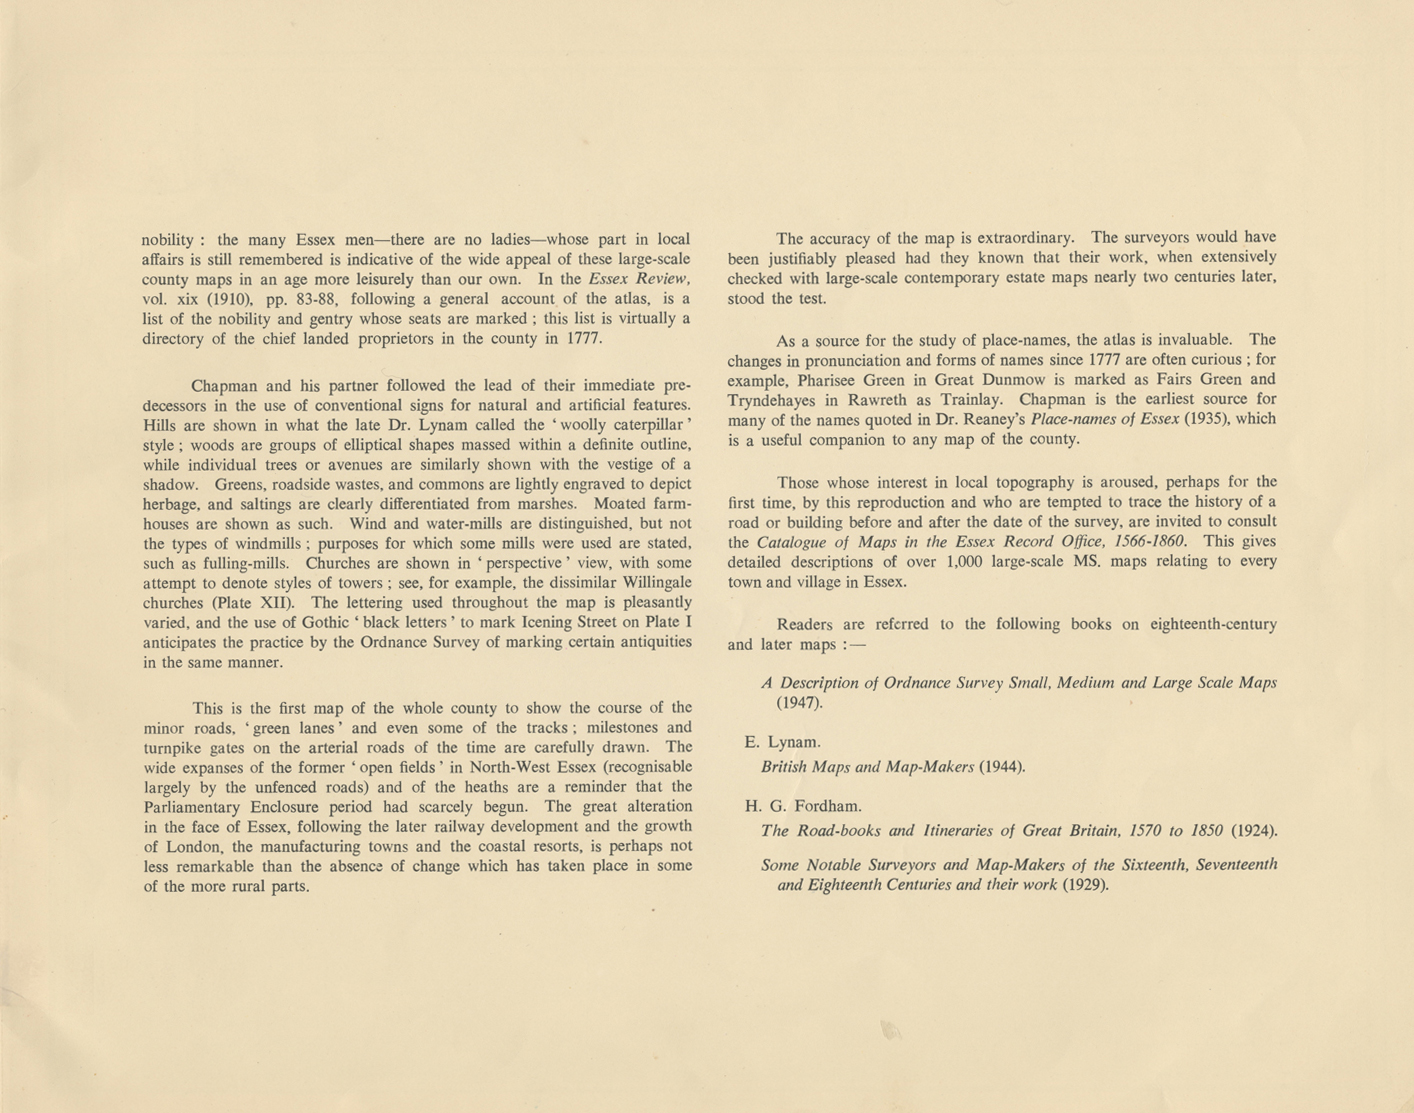 This image is a scan of the introductory text (p.5) from Essex Record Office publication A Reproduction of a Map of the County of Essex 1777 by John Chapman & Peter André, 1950. This introductory text is transcribed below.